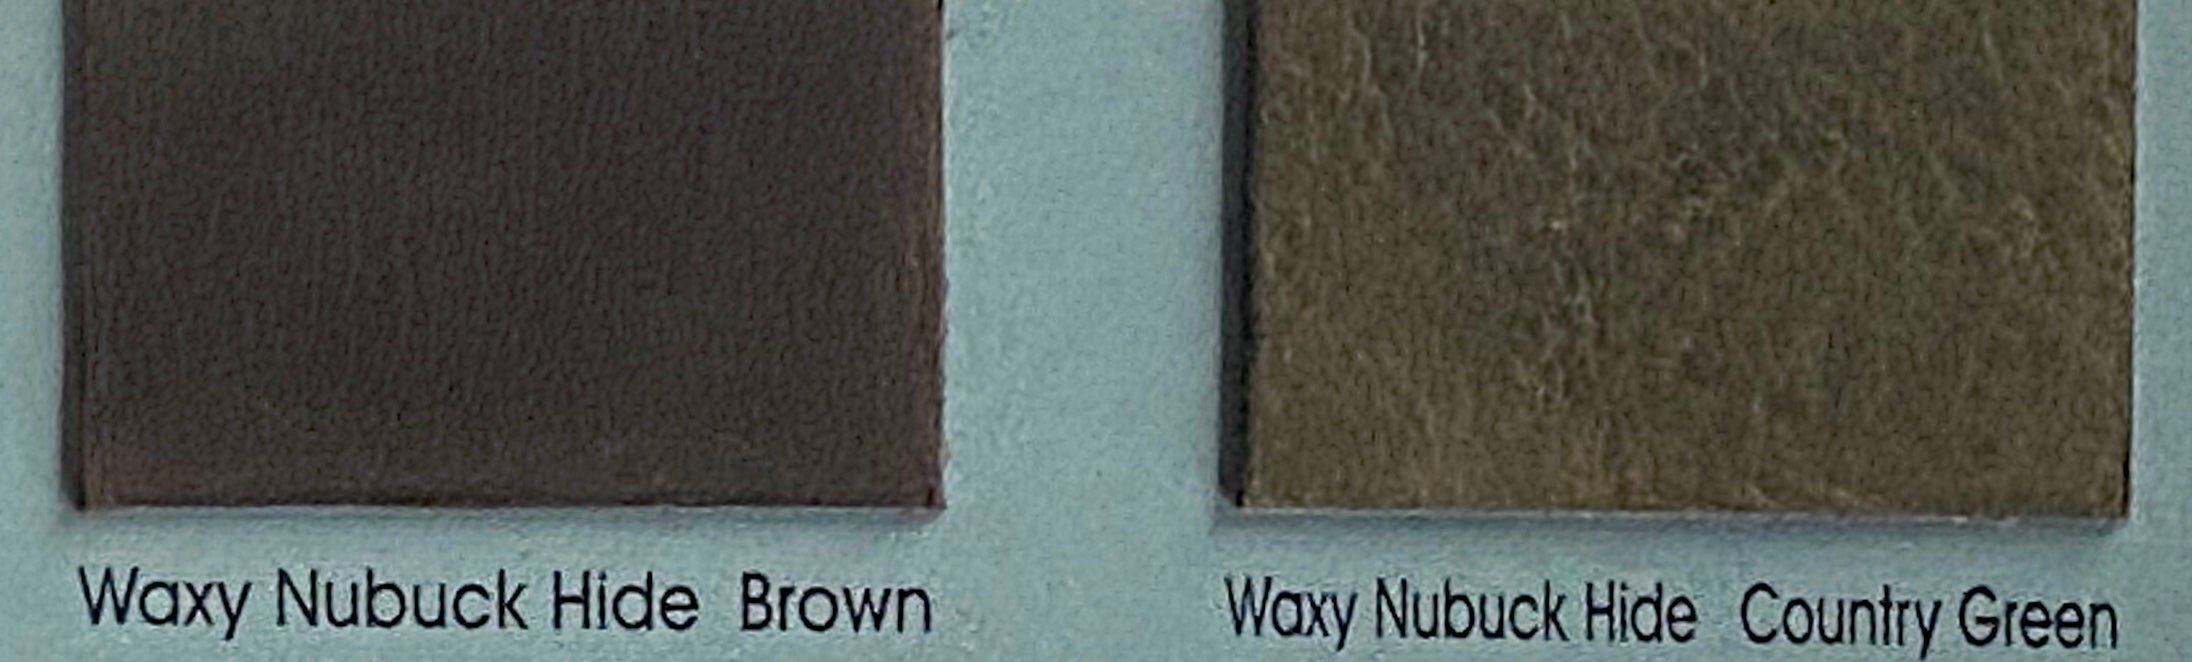 Nubuck Green Waxy Nubuck Cow Hide : (0.9-1.1mm) This Hide Is Perfect for Leather Crafts Leather Bags , Leather Accessories.